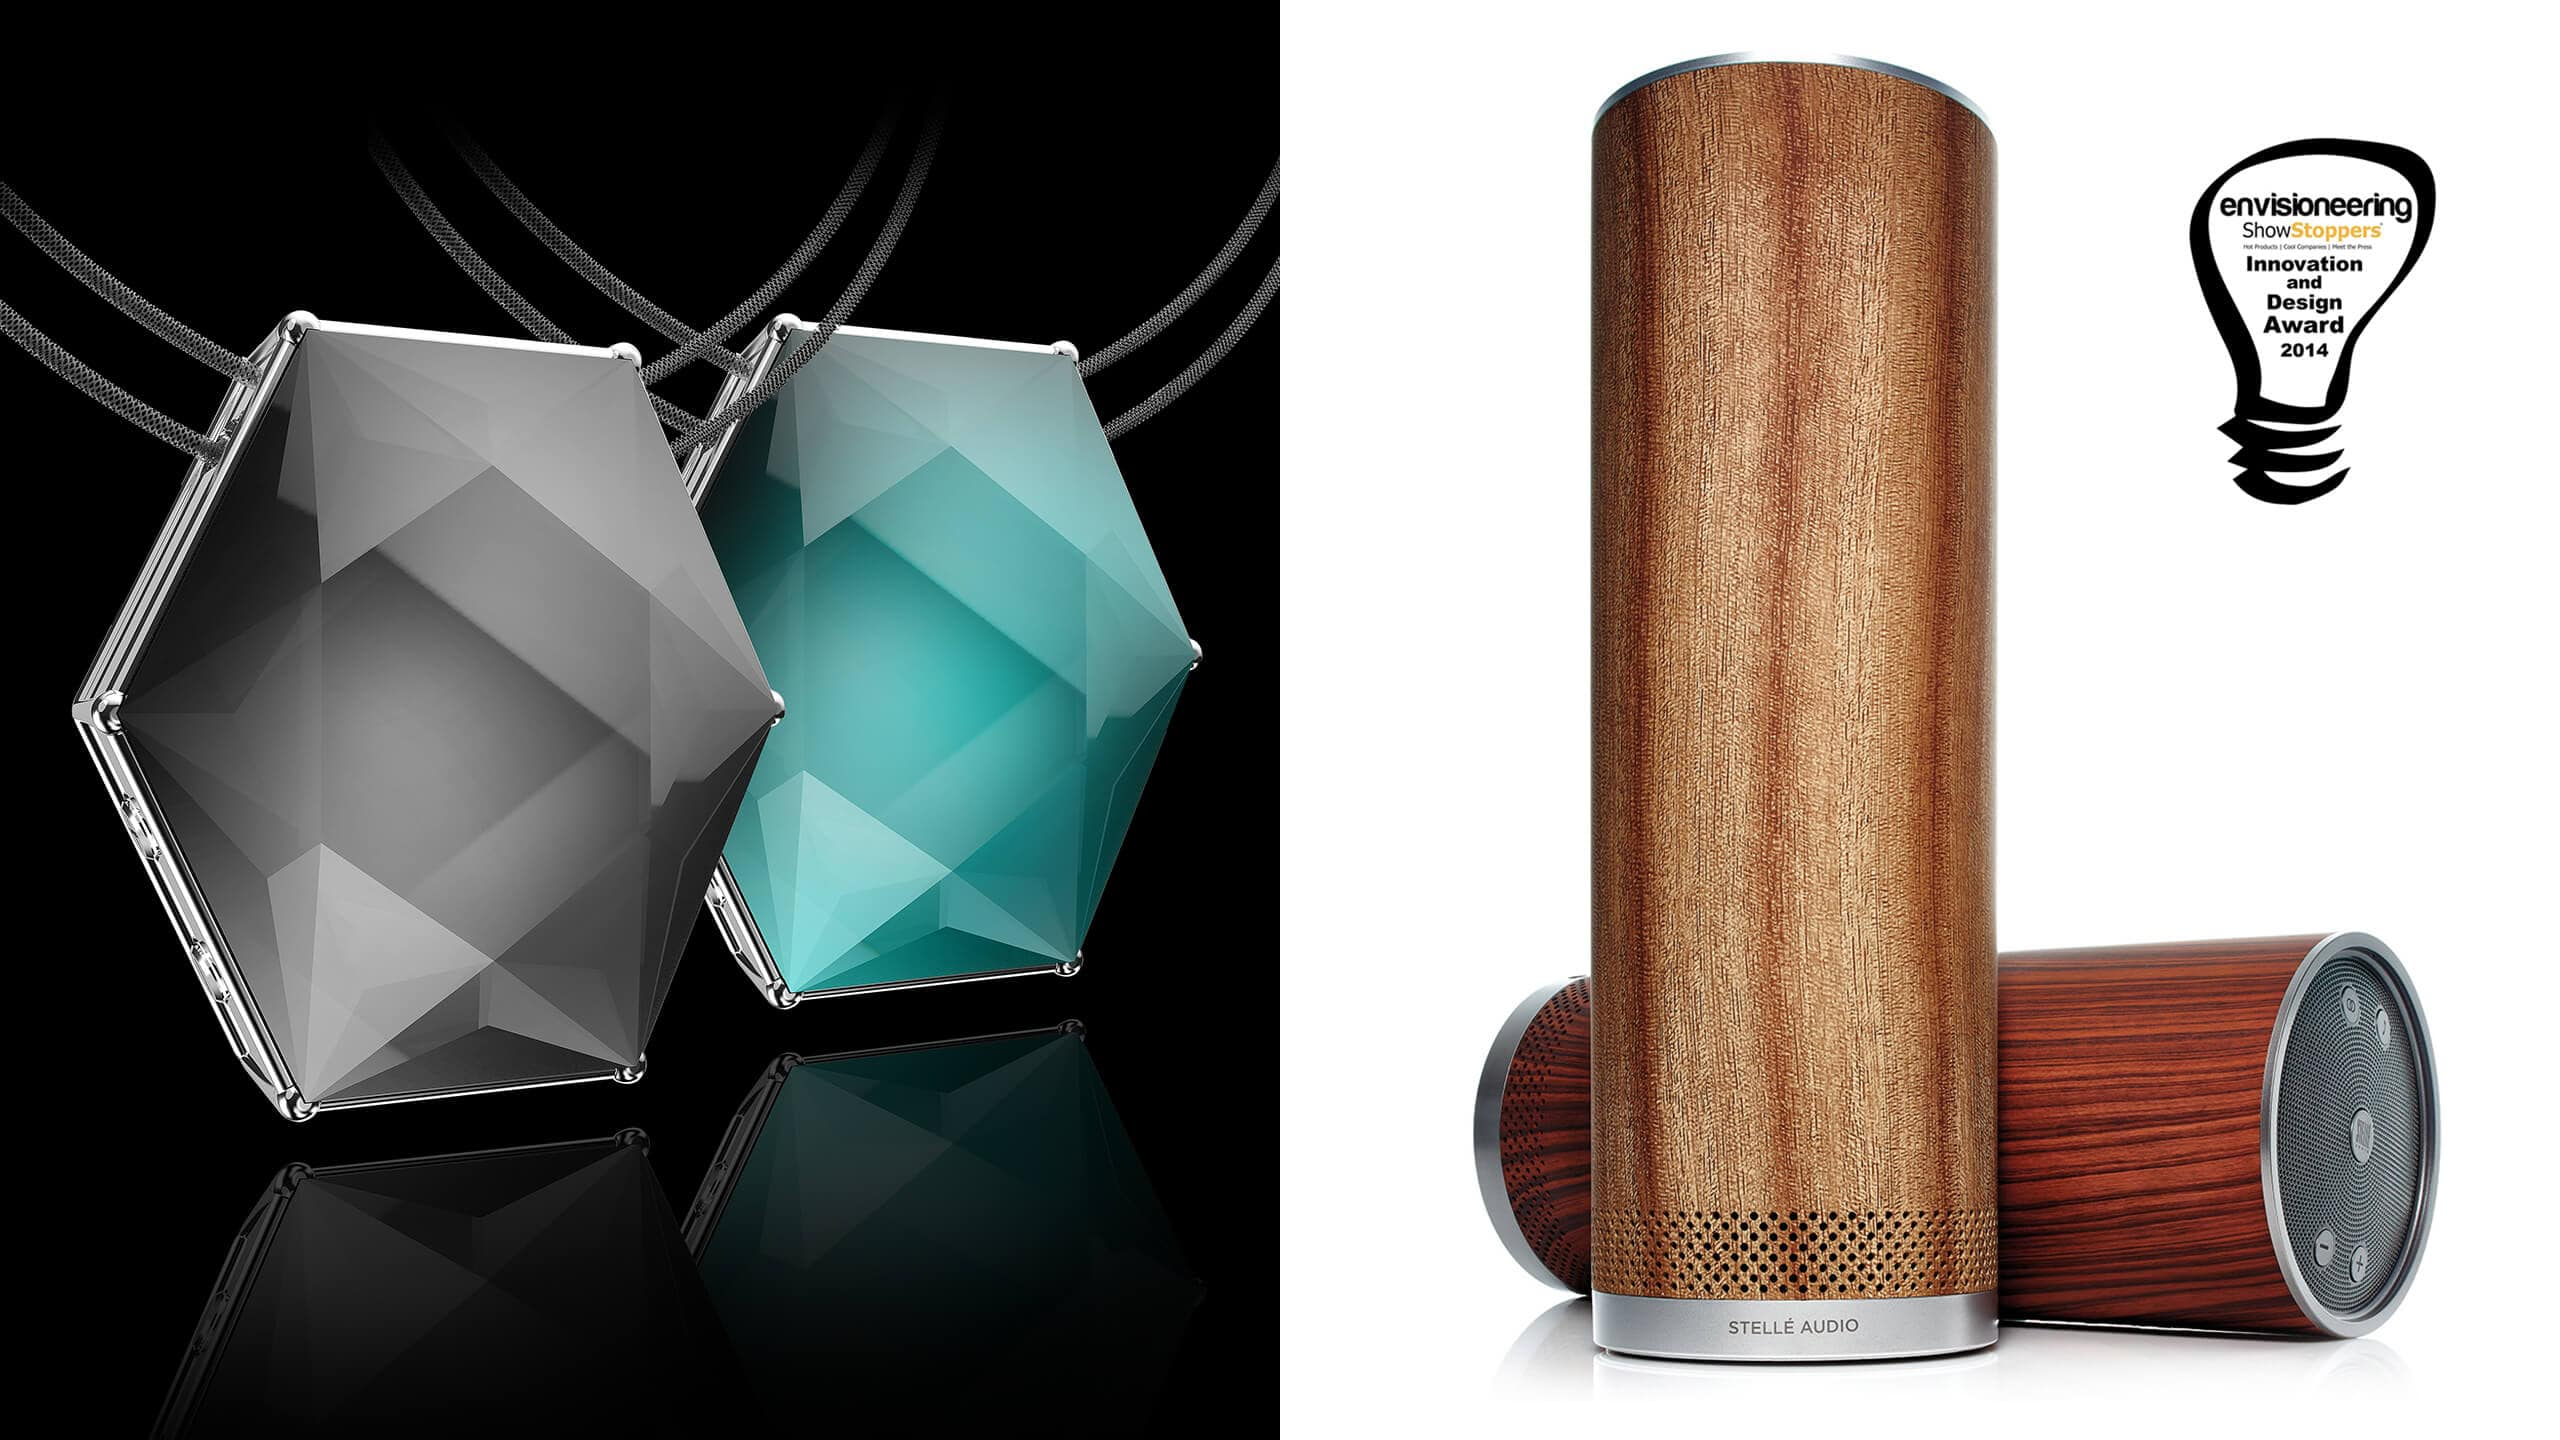 Sprout studios, Boston, industrial design, product design, start up, showstopper award, stelle